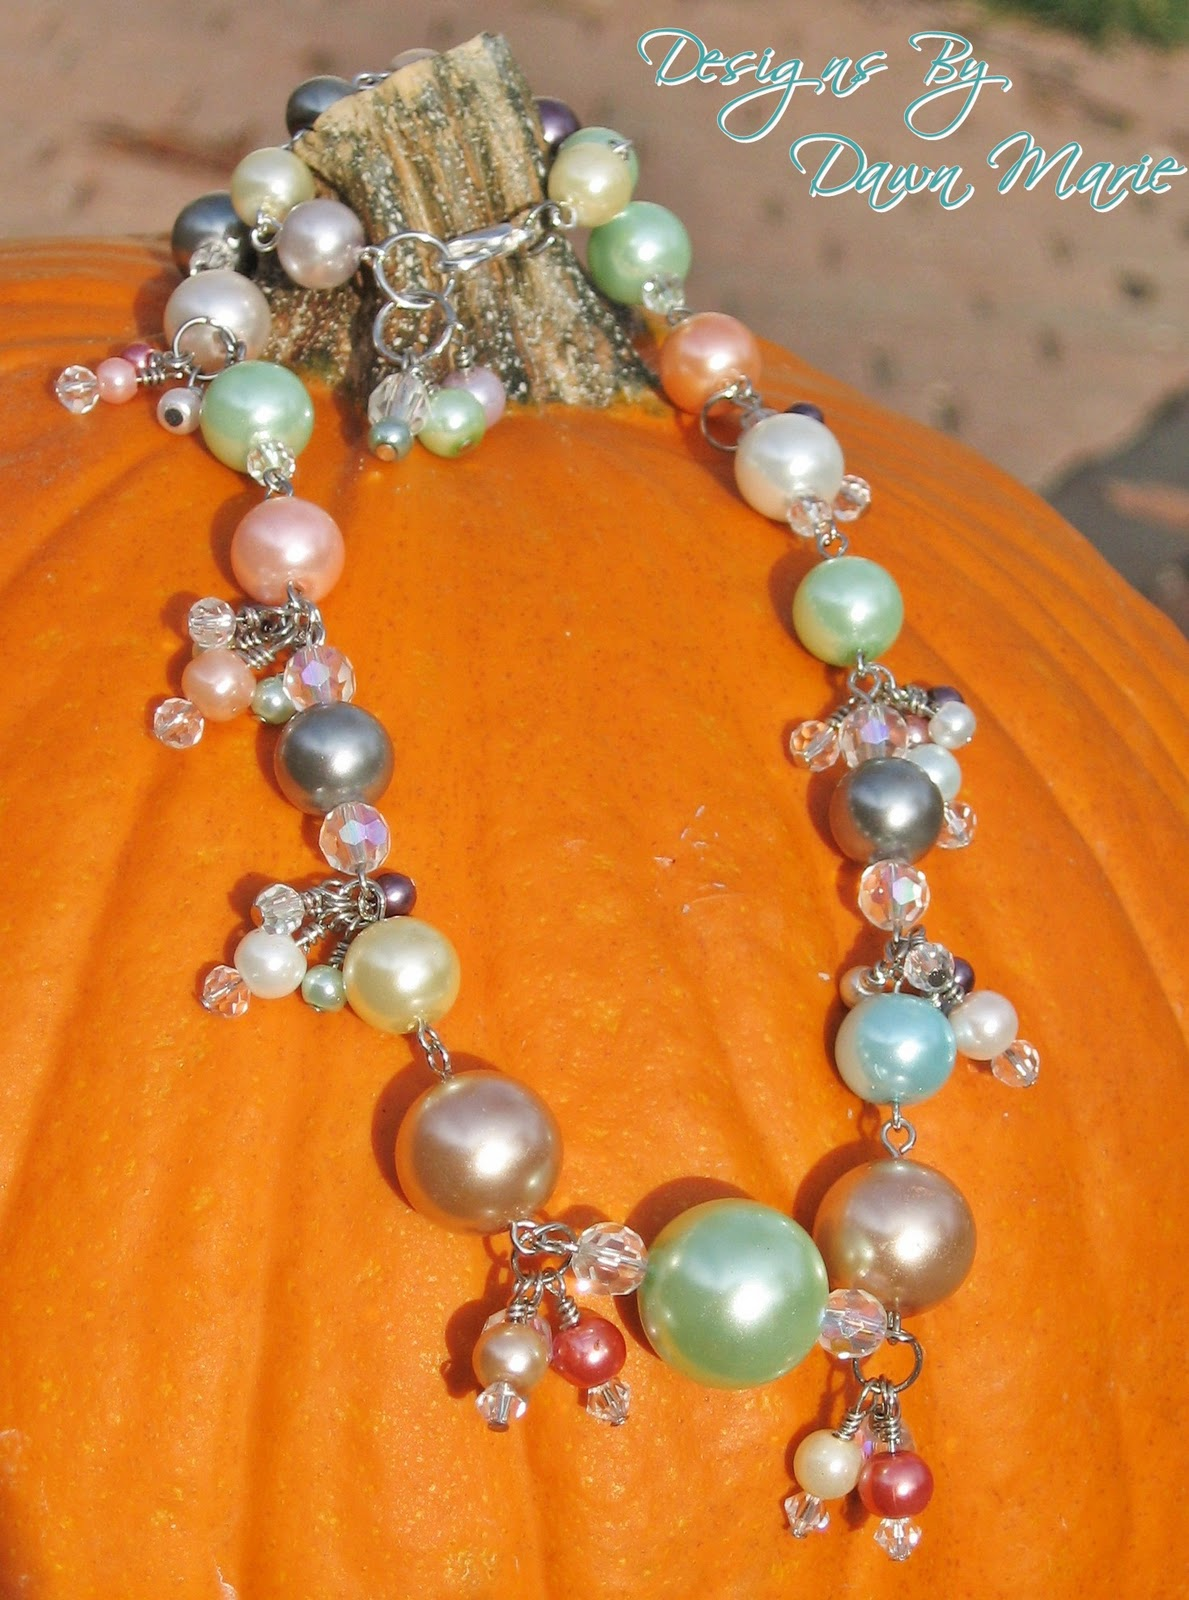 Bella amore legacy jewelry jewelry and beading magazines for Step by step wire jewelry subscription